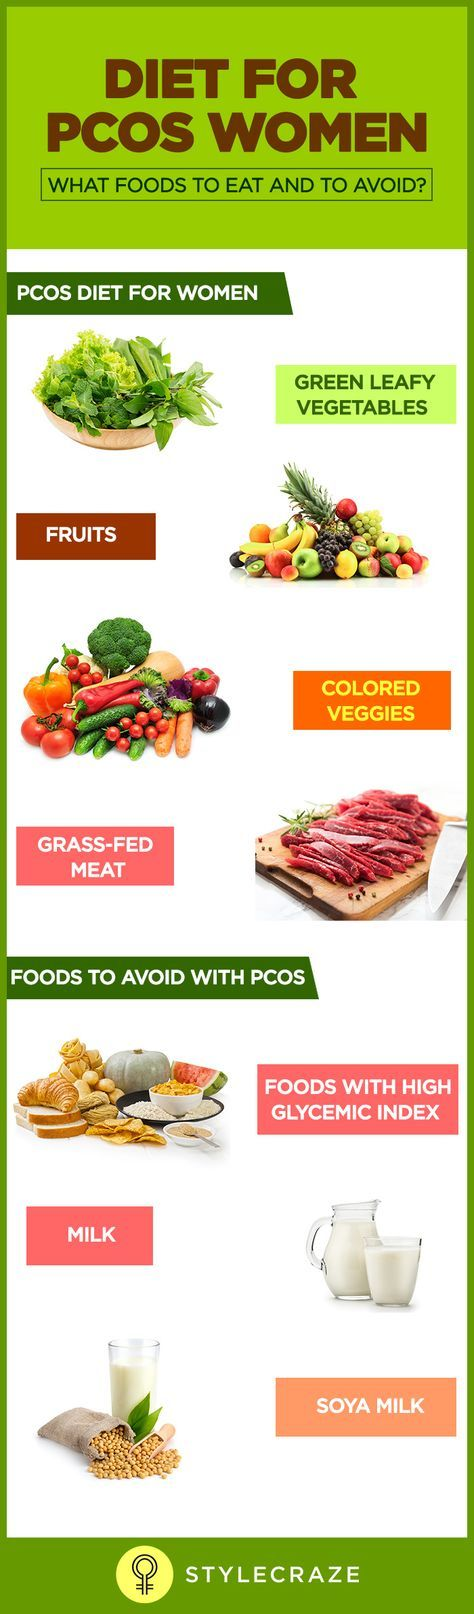 How to lose stomach and back fat quickly picture 4